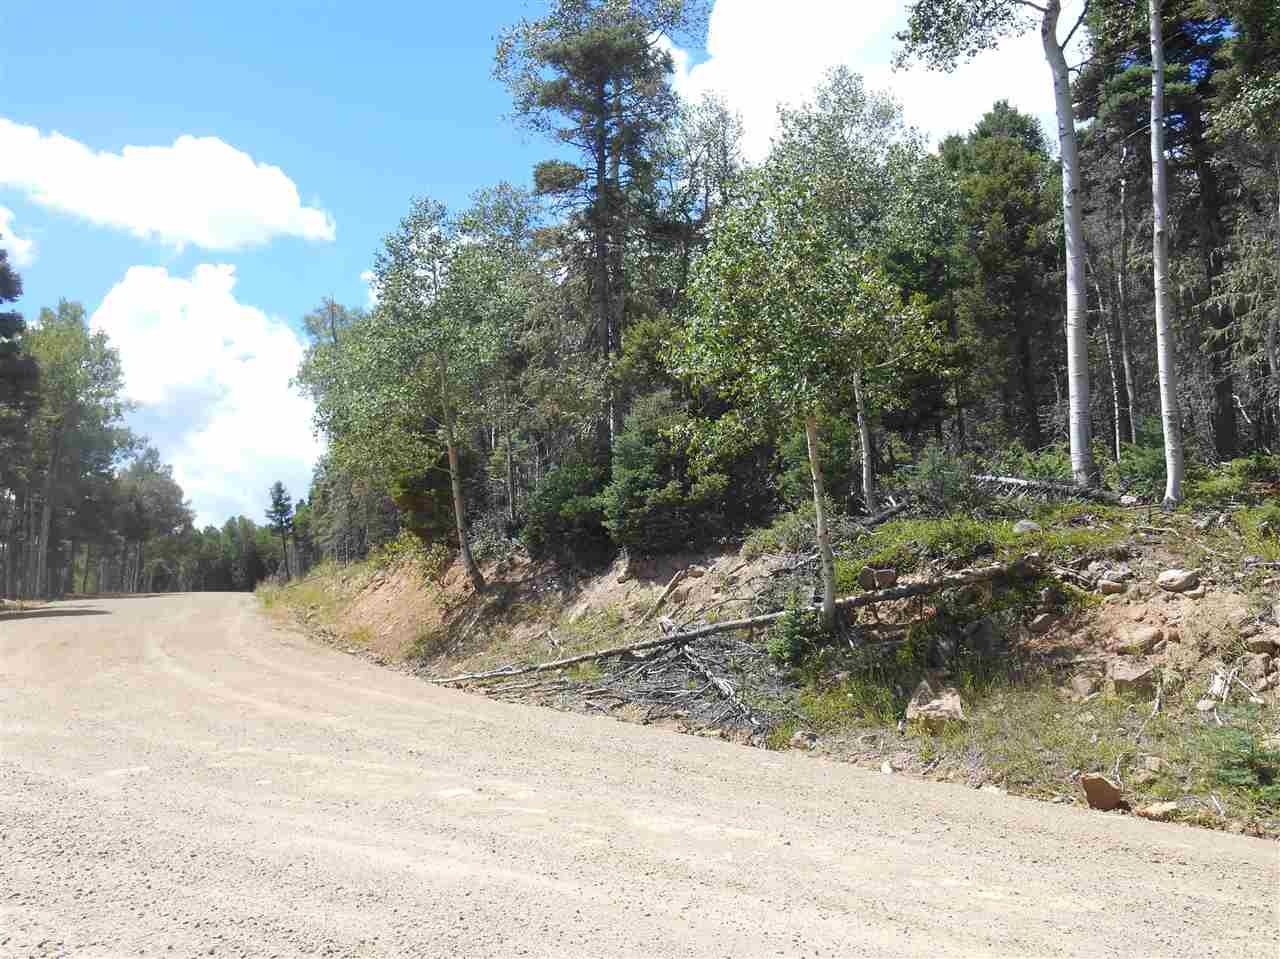 Heavily wooded 1.79 acre lot with various views of east valley rim depending on building site.  Property has nice mix of aspen, pine, blue spruce trees, and mountain vegetation.  Good year-round access via village maintained road.